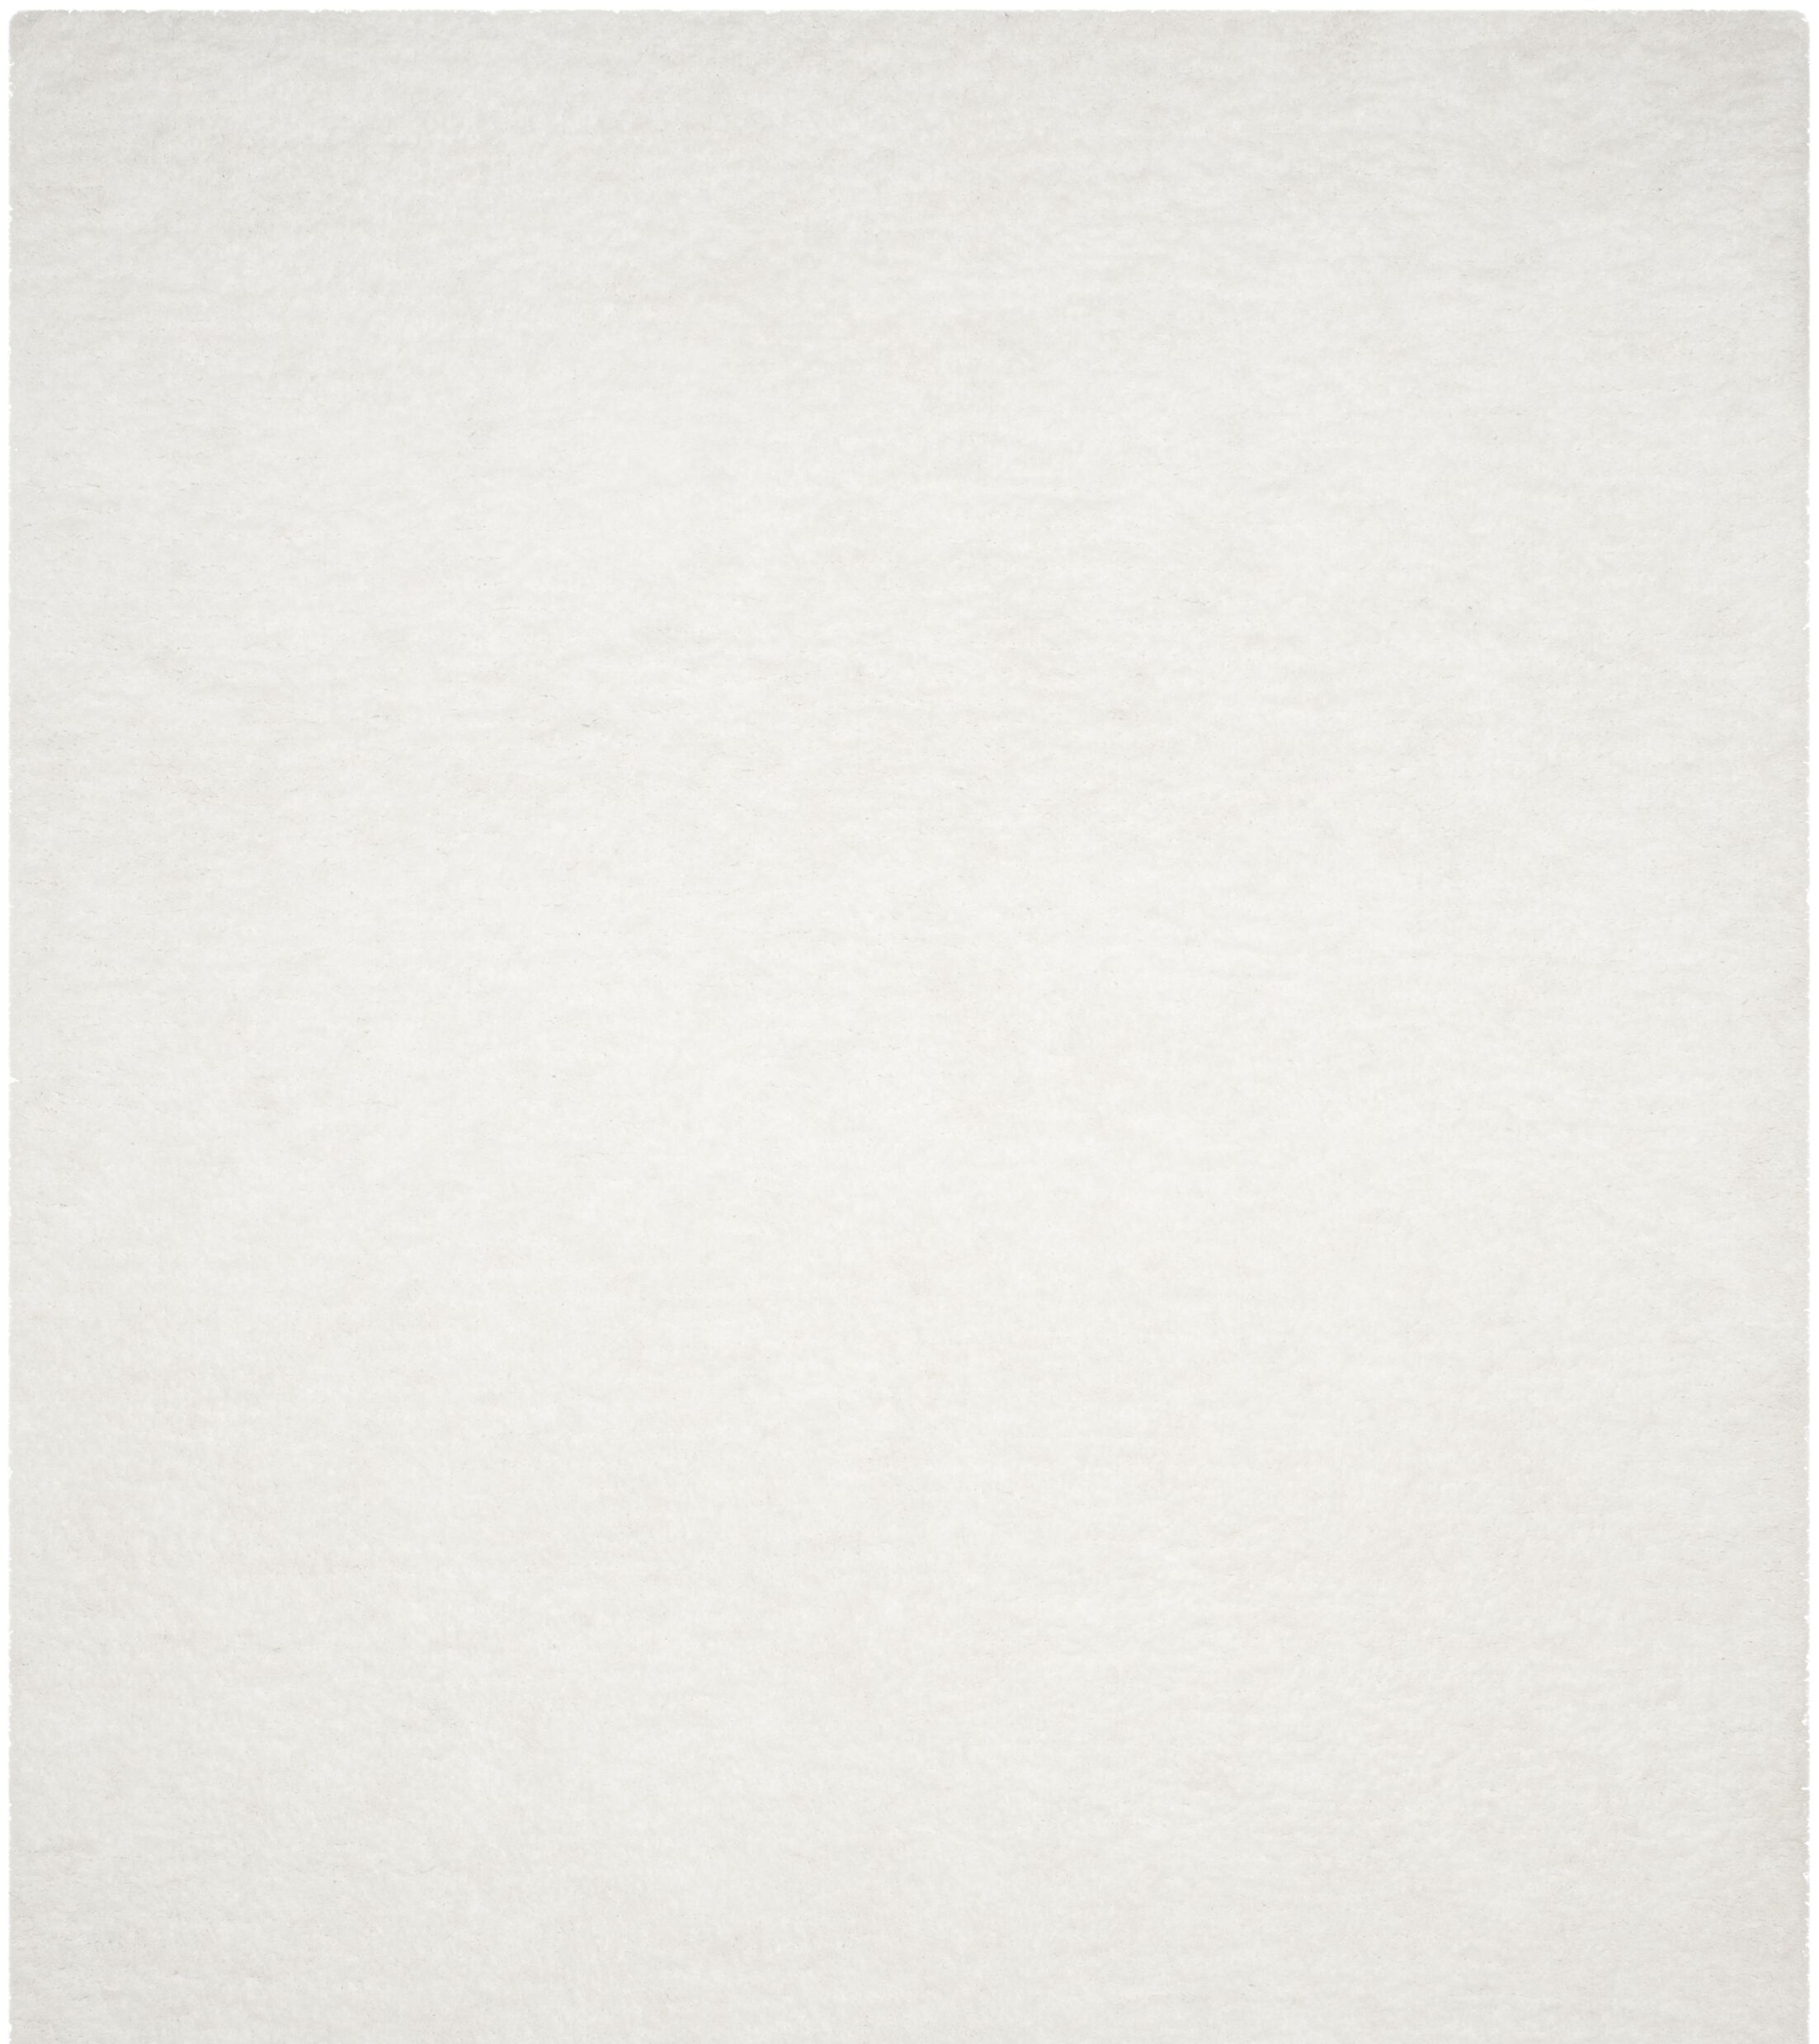 Detweiler Hand-Tufted White Area Rug Rug Size: Rectangle 4' x 6'